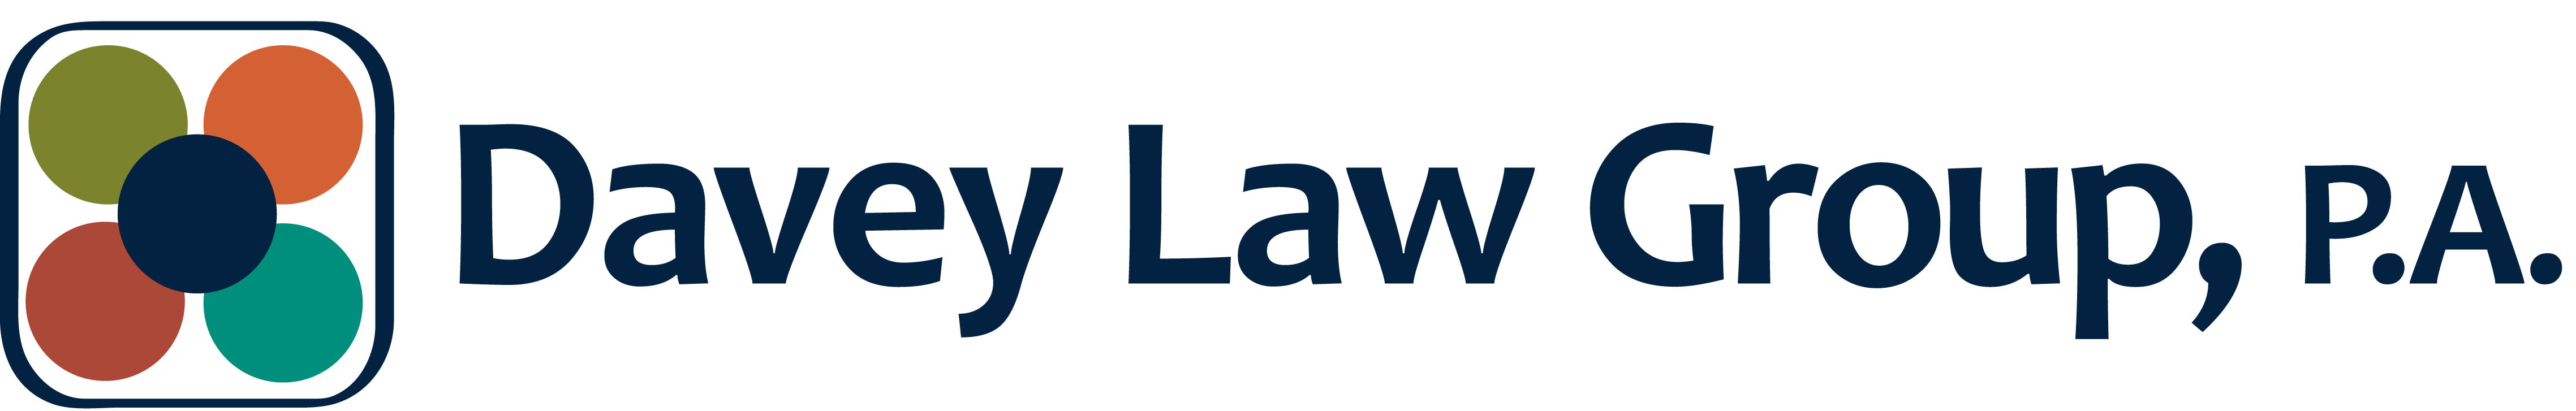 Davey Law Group, P.A. Logo